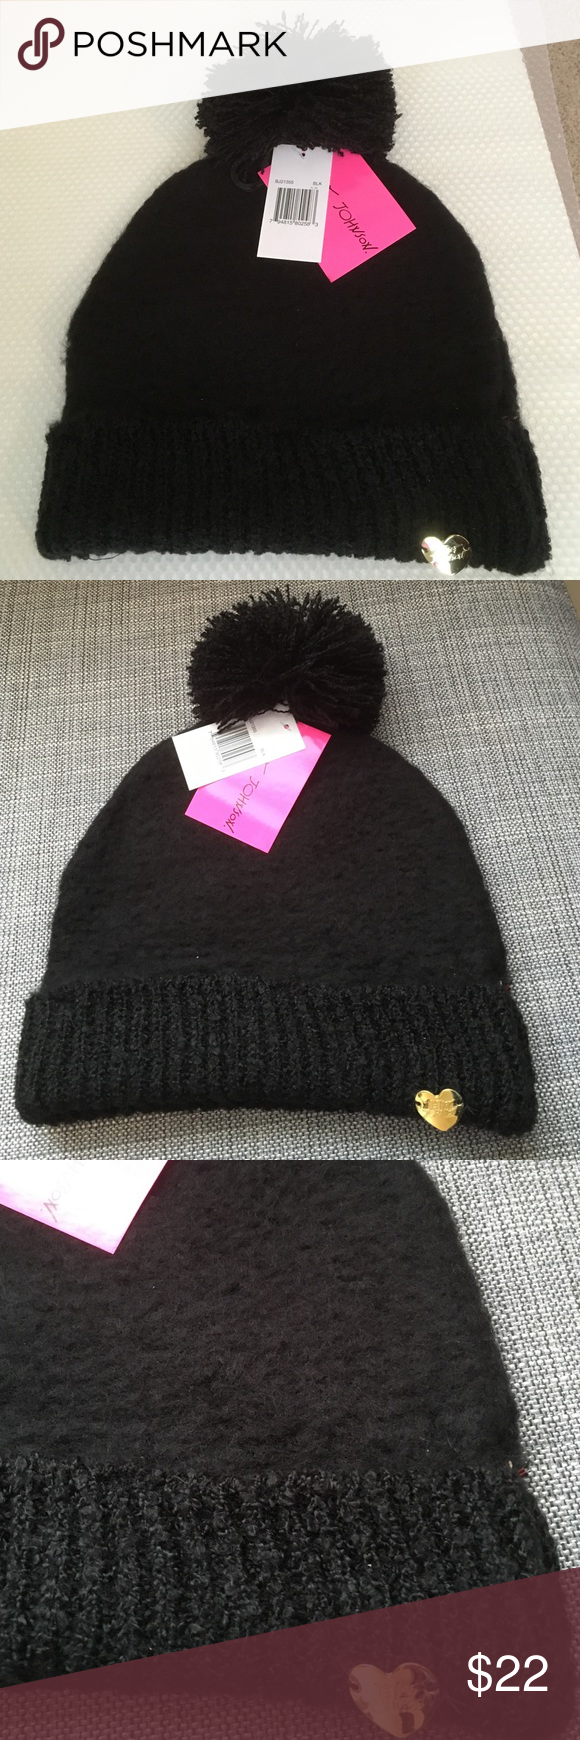 a7433205508 Betsey johnson black cuff hat betsey johnson black plush beanie hat for a  whimsical look acrylic